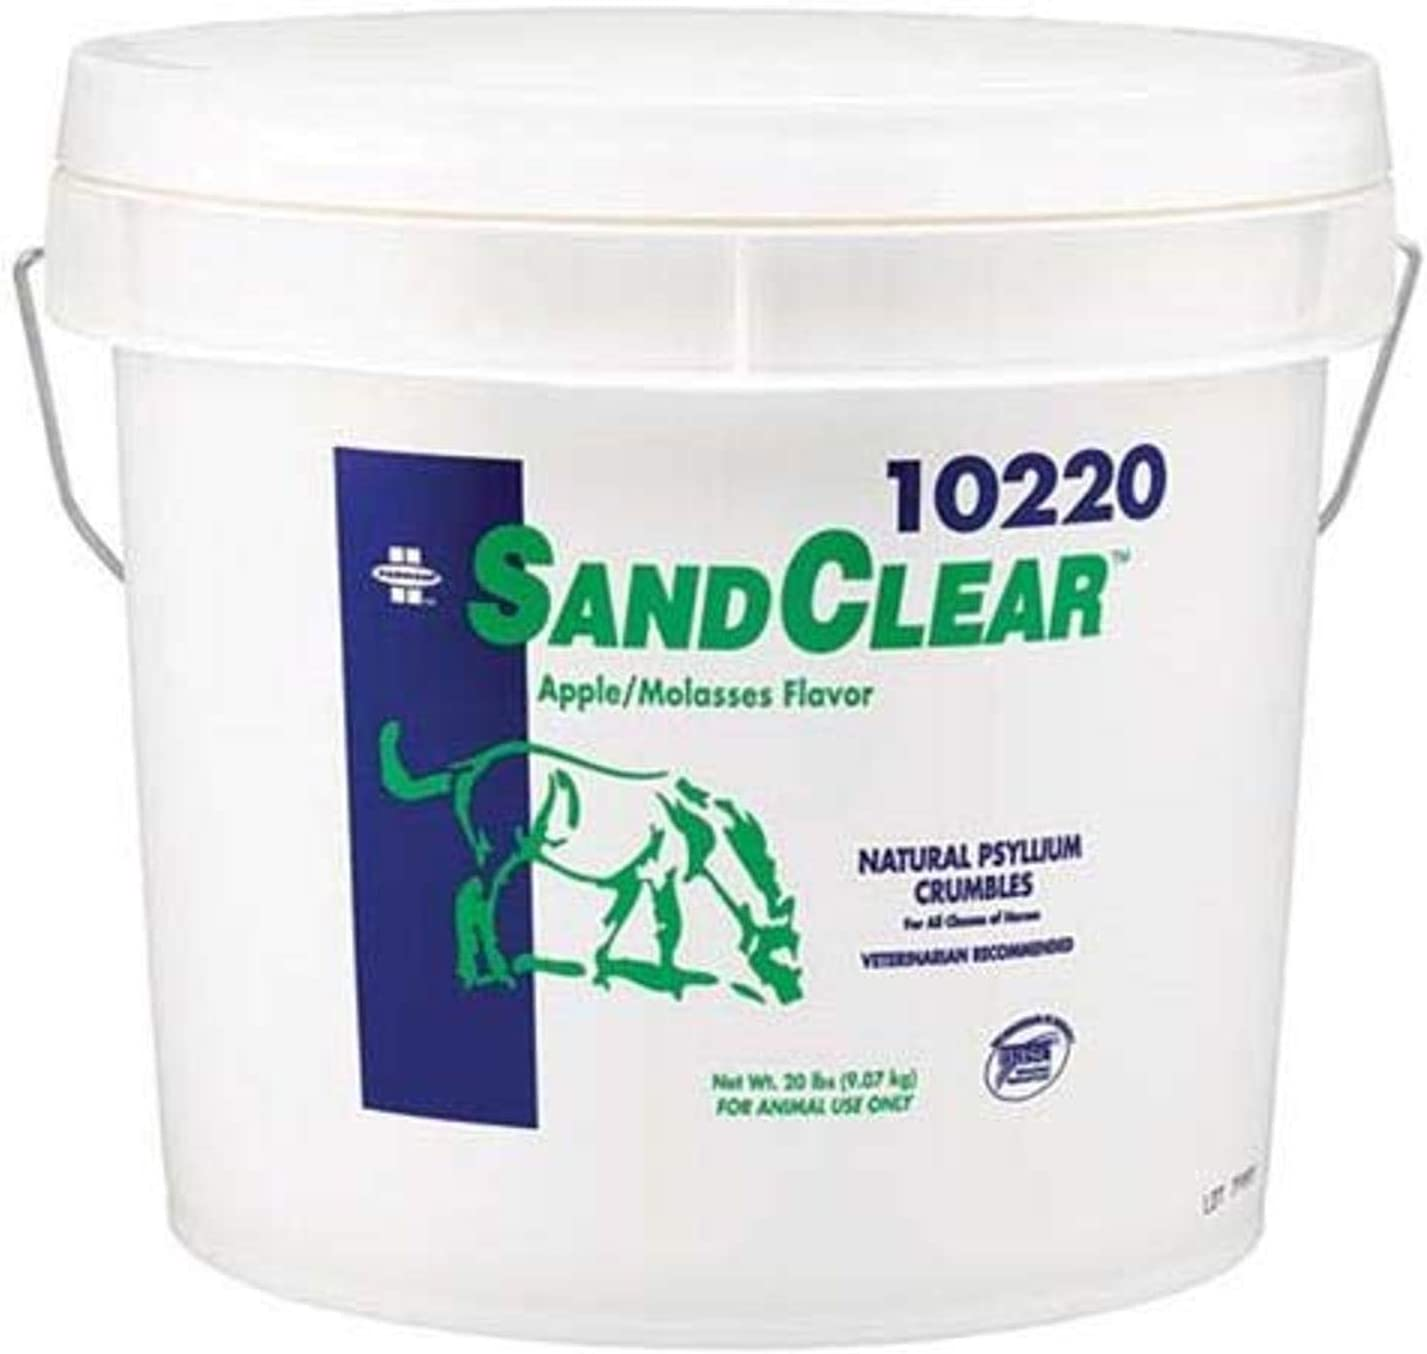 Farnam Sand Clear Digestive Aid for Horse, 20-Pound (10220) : Horse Nutritional Supplements And Remedies : Pet Supplies